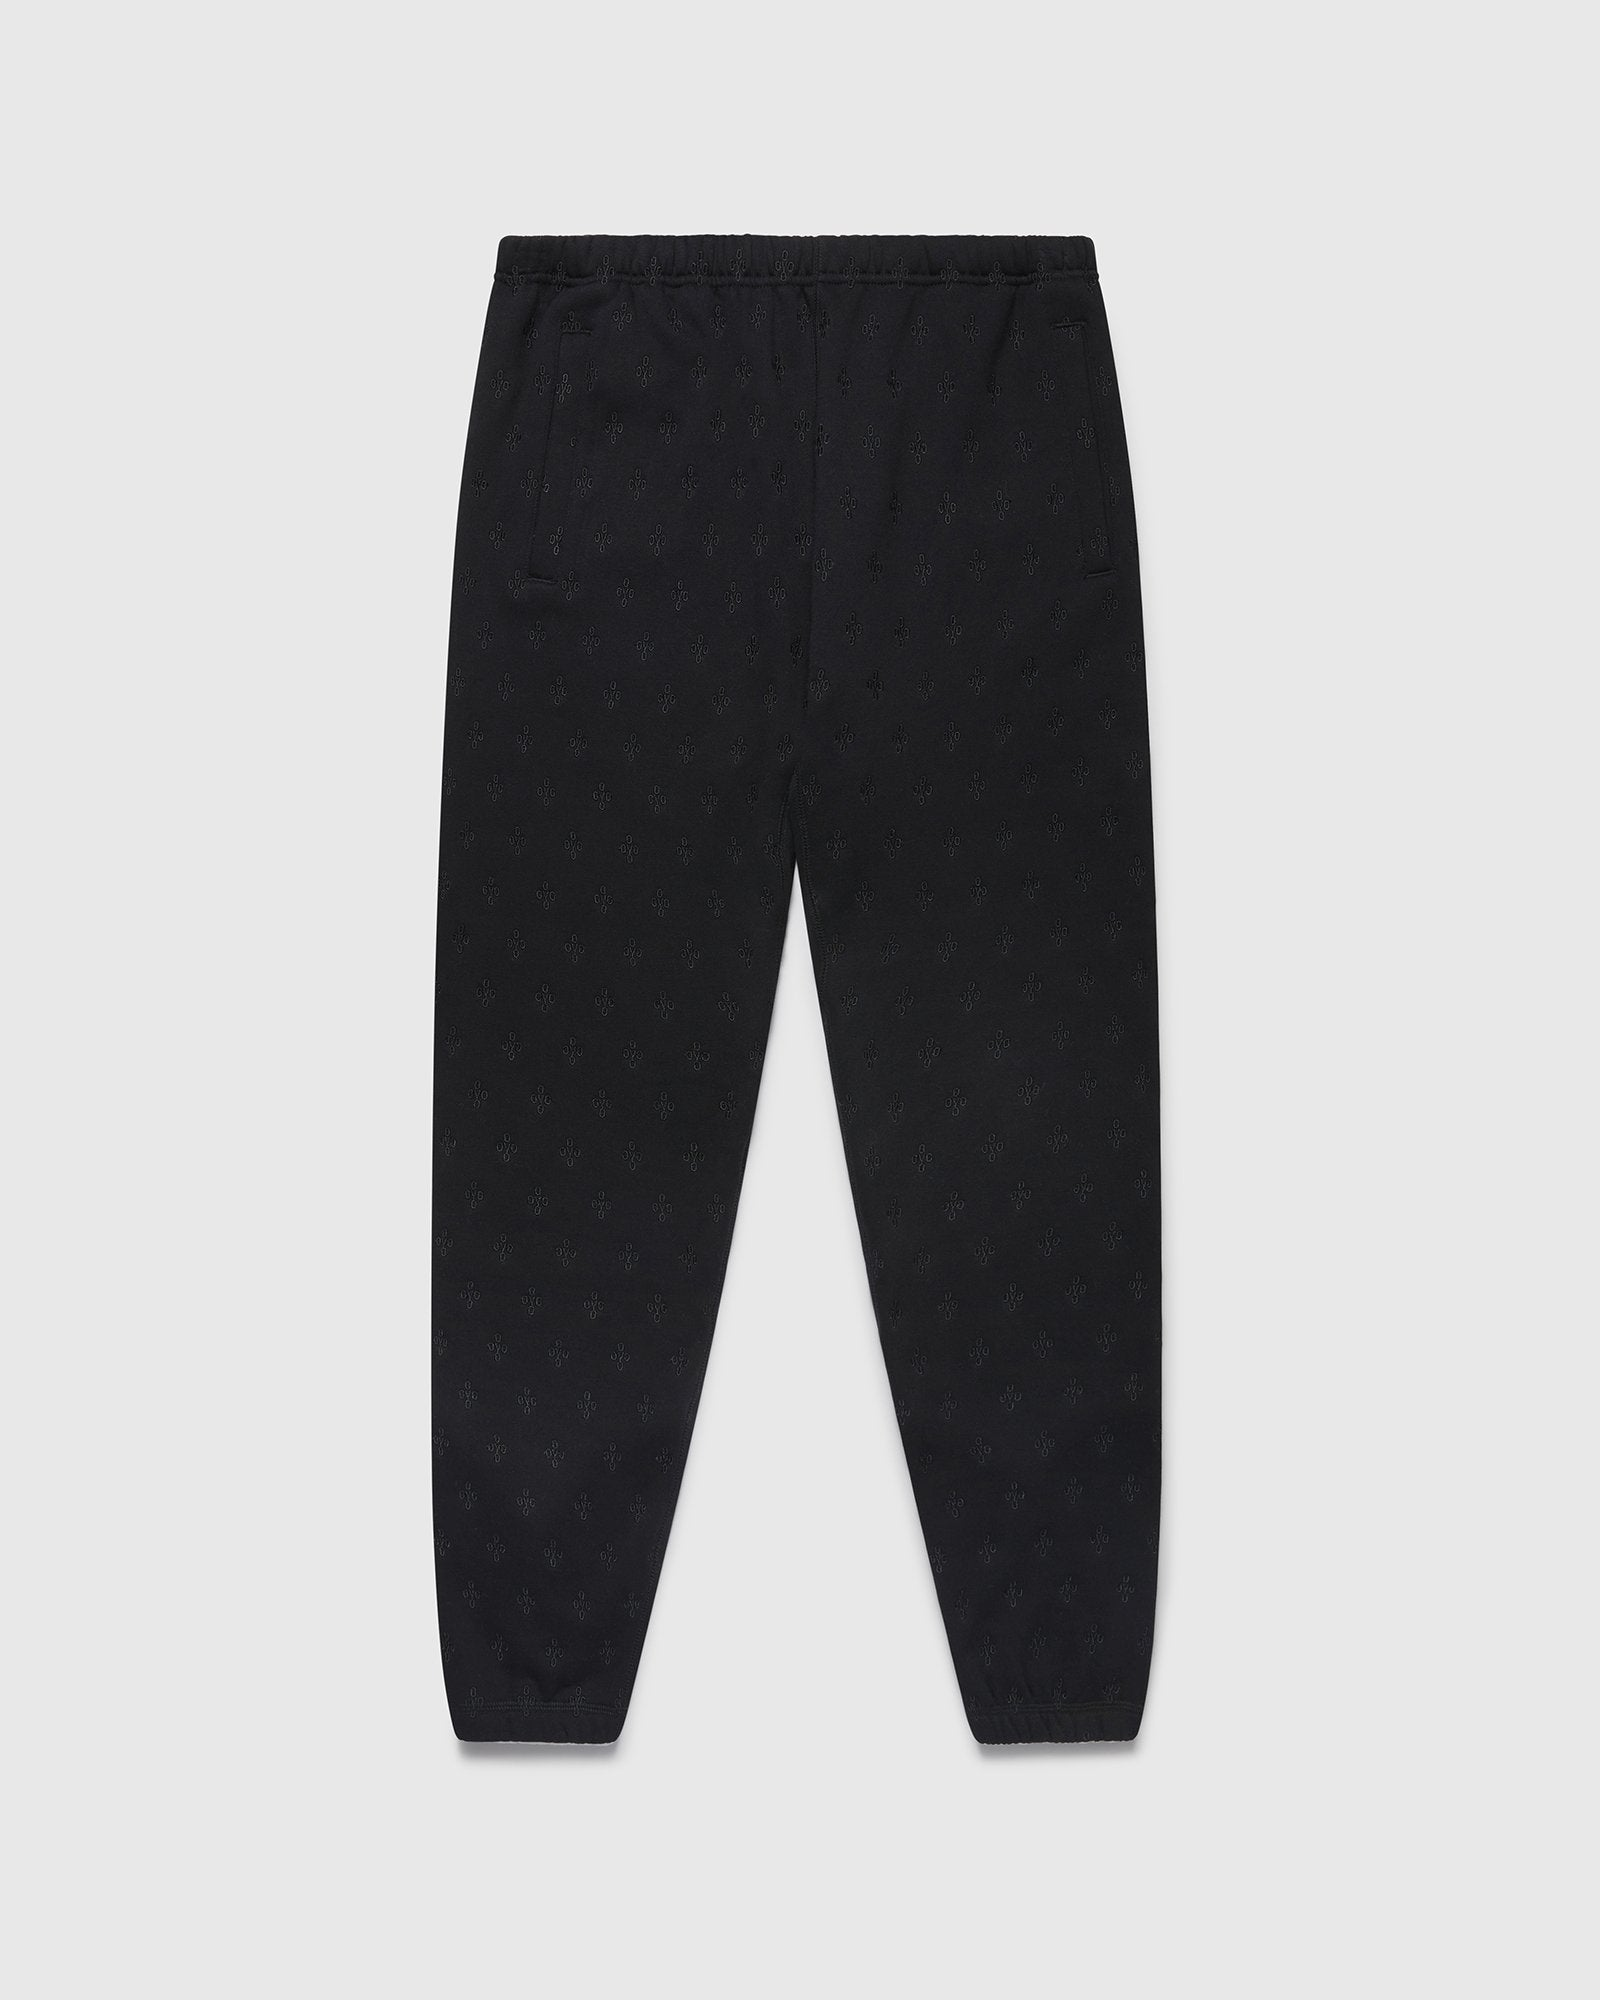 MONOGRAM SWEATPANT - BLACK IMAGE #1